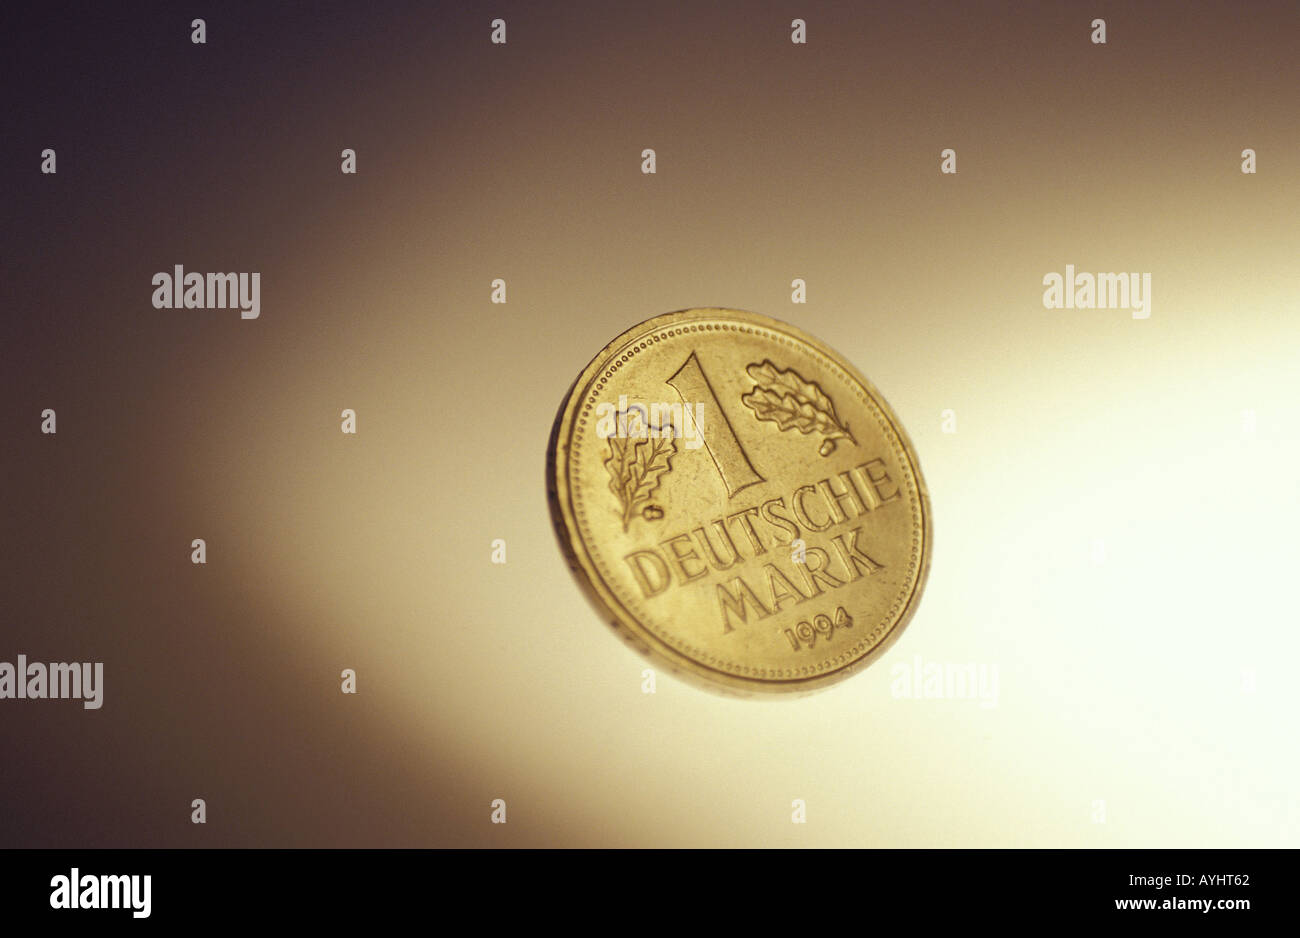 Eine Mark - Stock Image